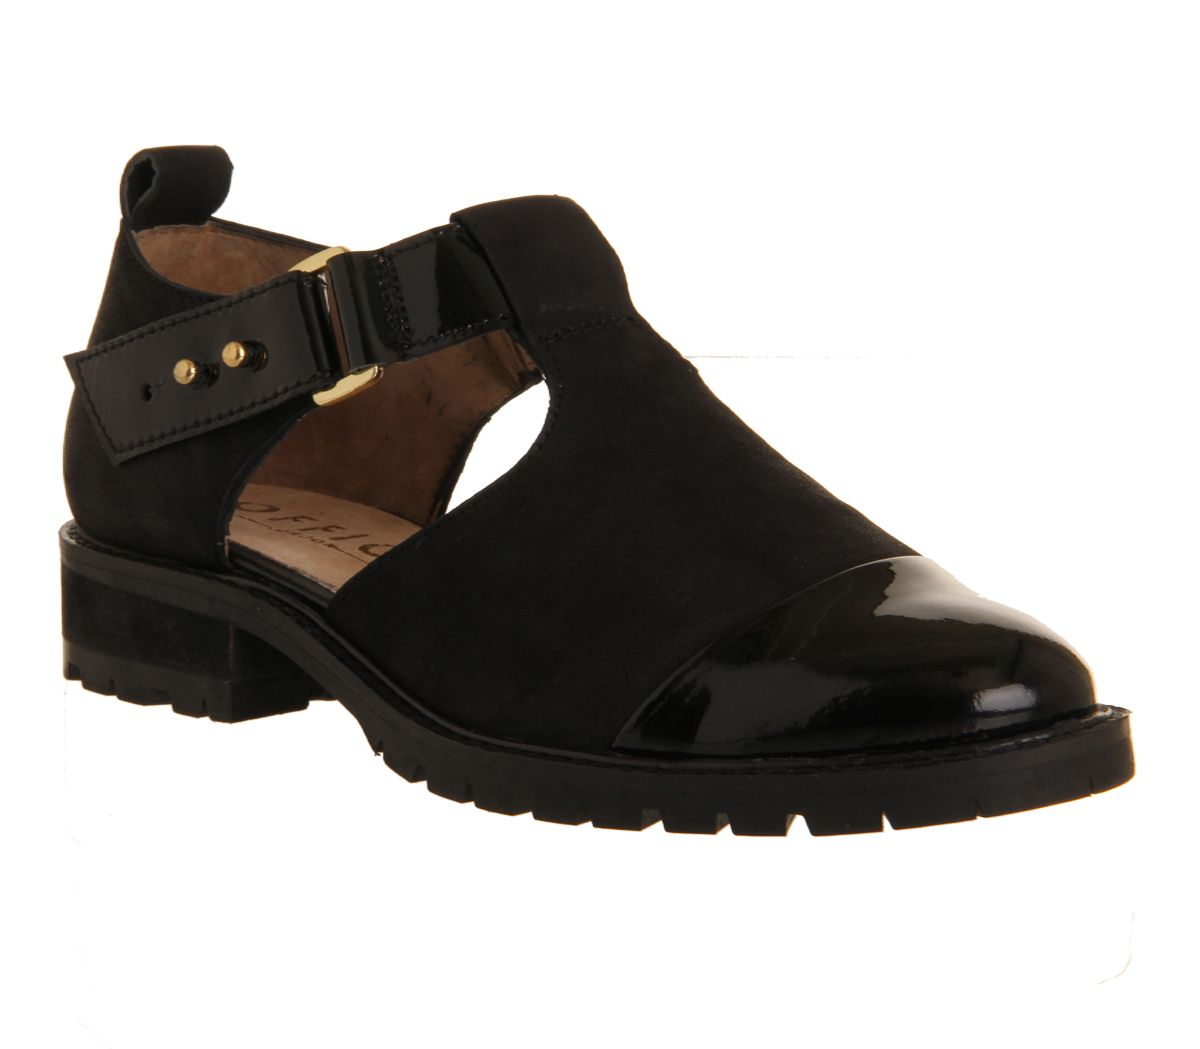 Kimble cut out cleat t-bar loafers